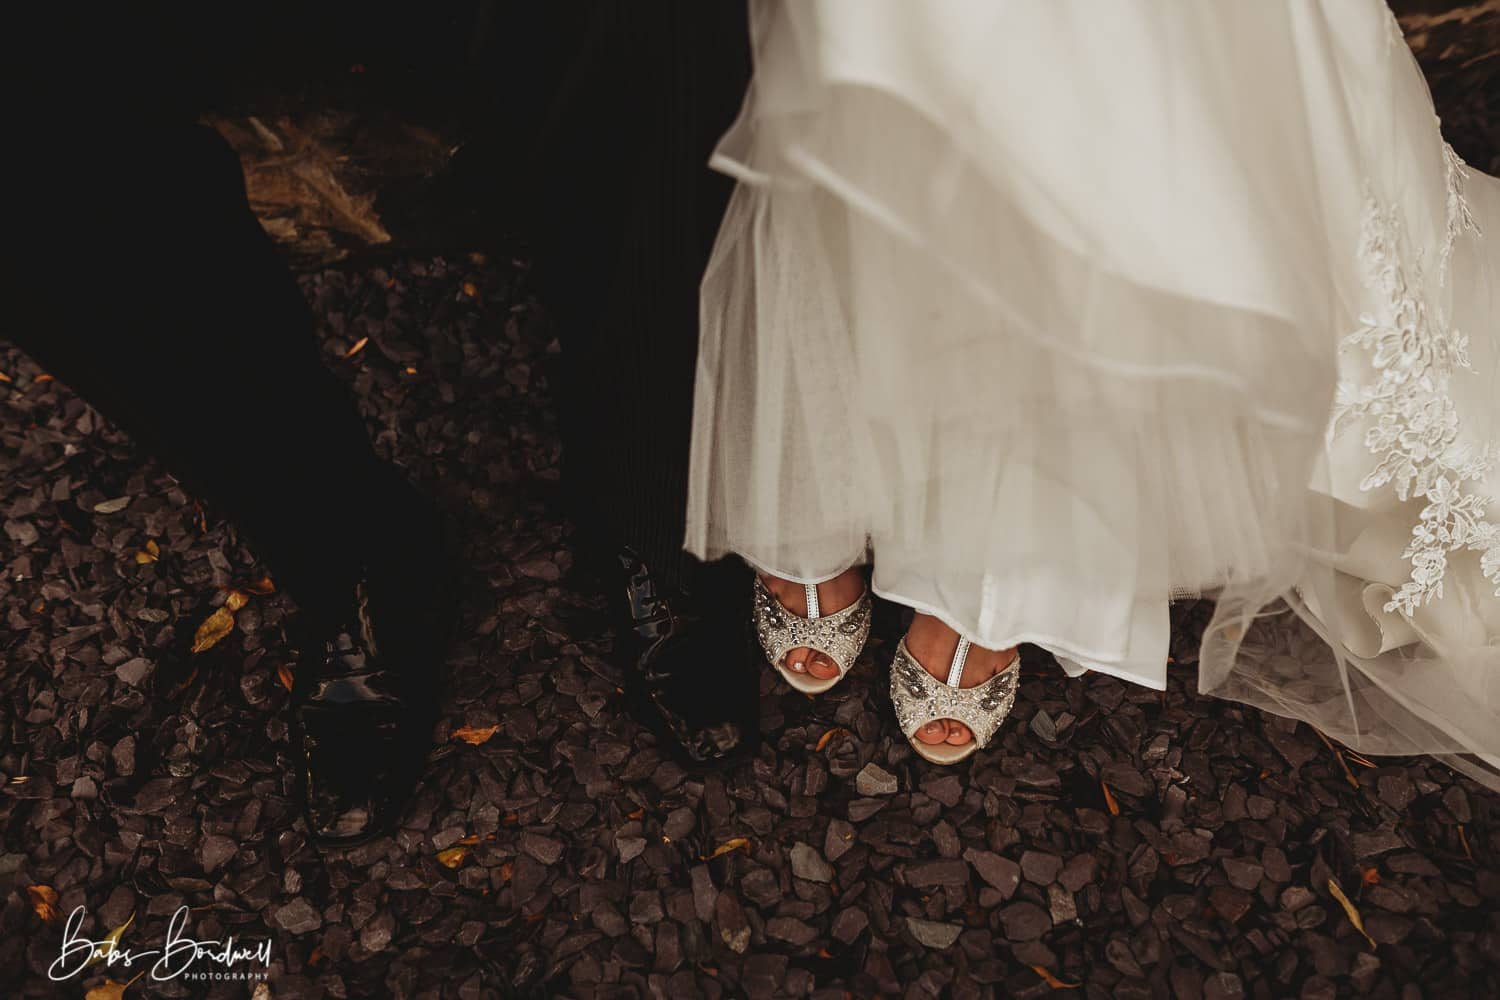 close-up of bride and groom's shoes